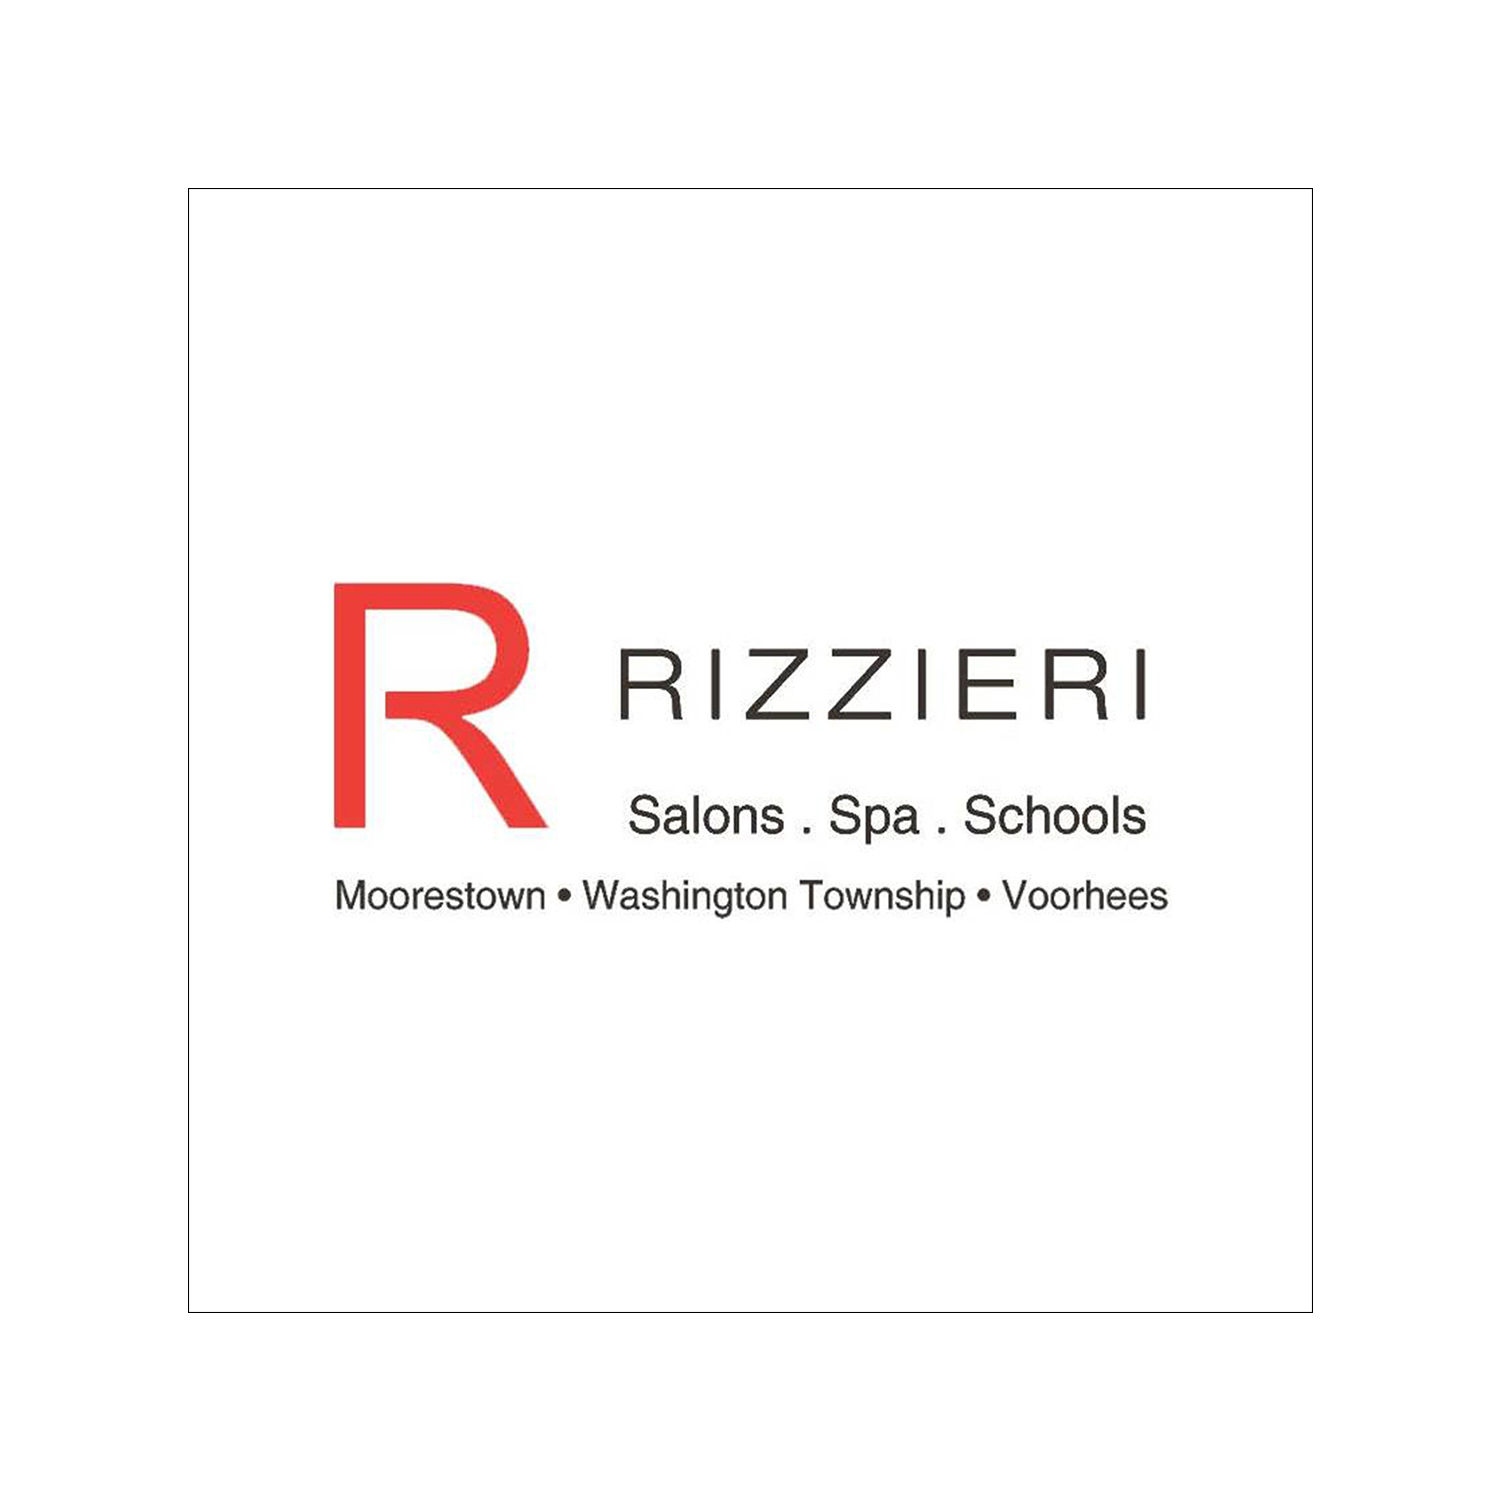 Rizzieri Salons, Spa, and Schools